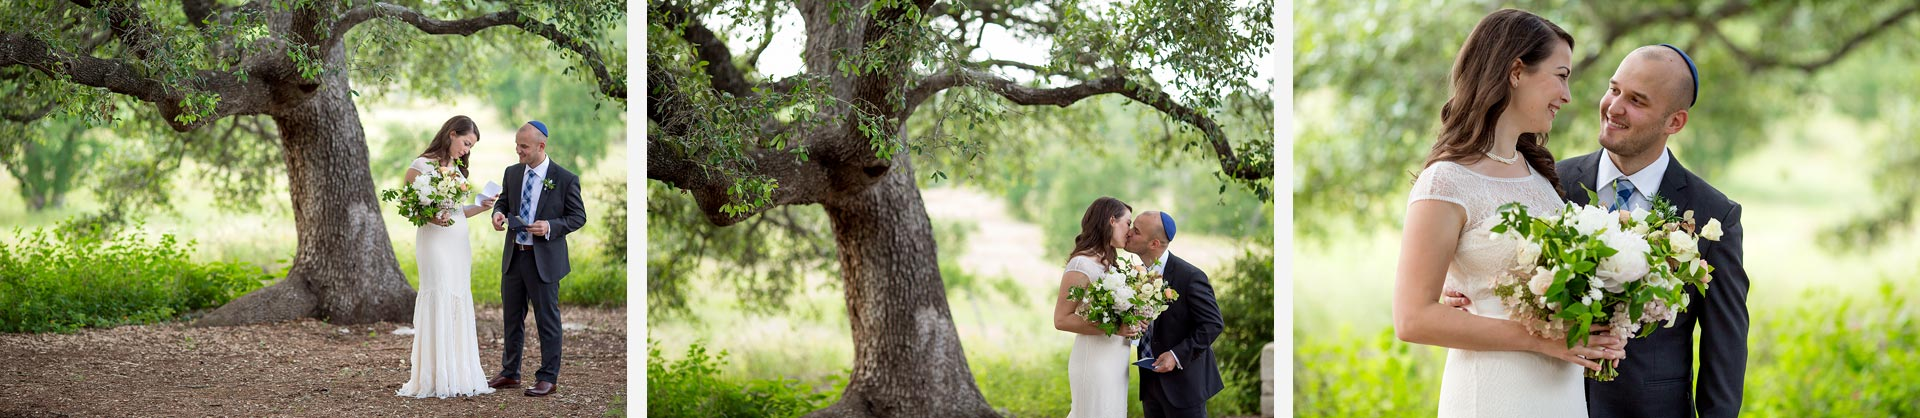 Best Wedding Photographers in Austin